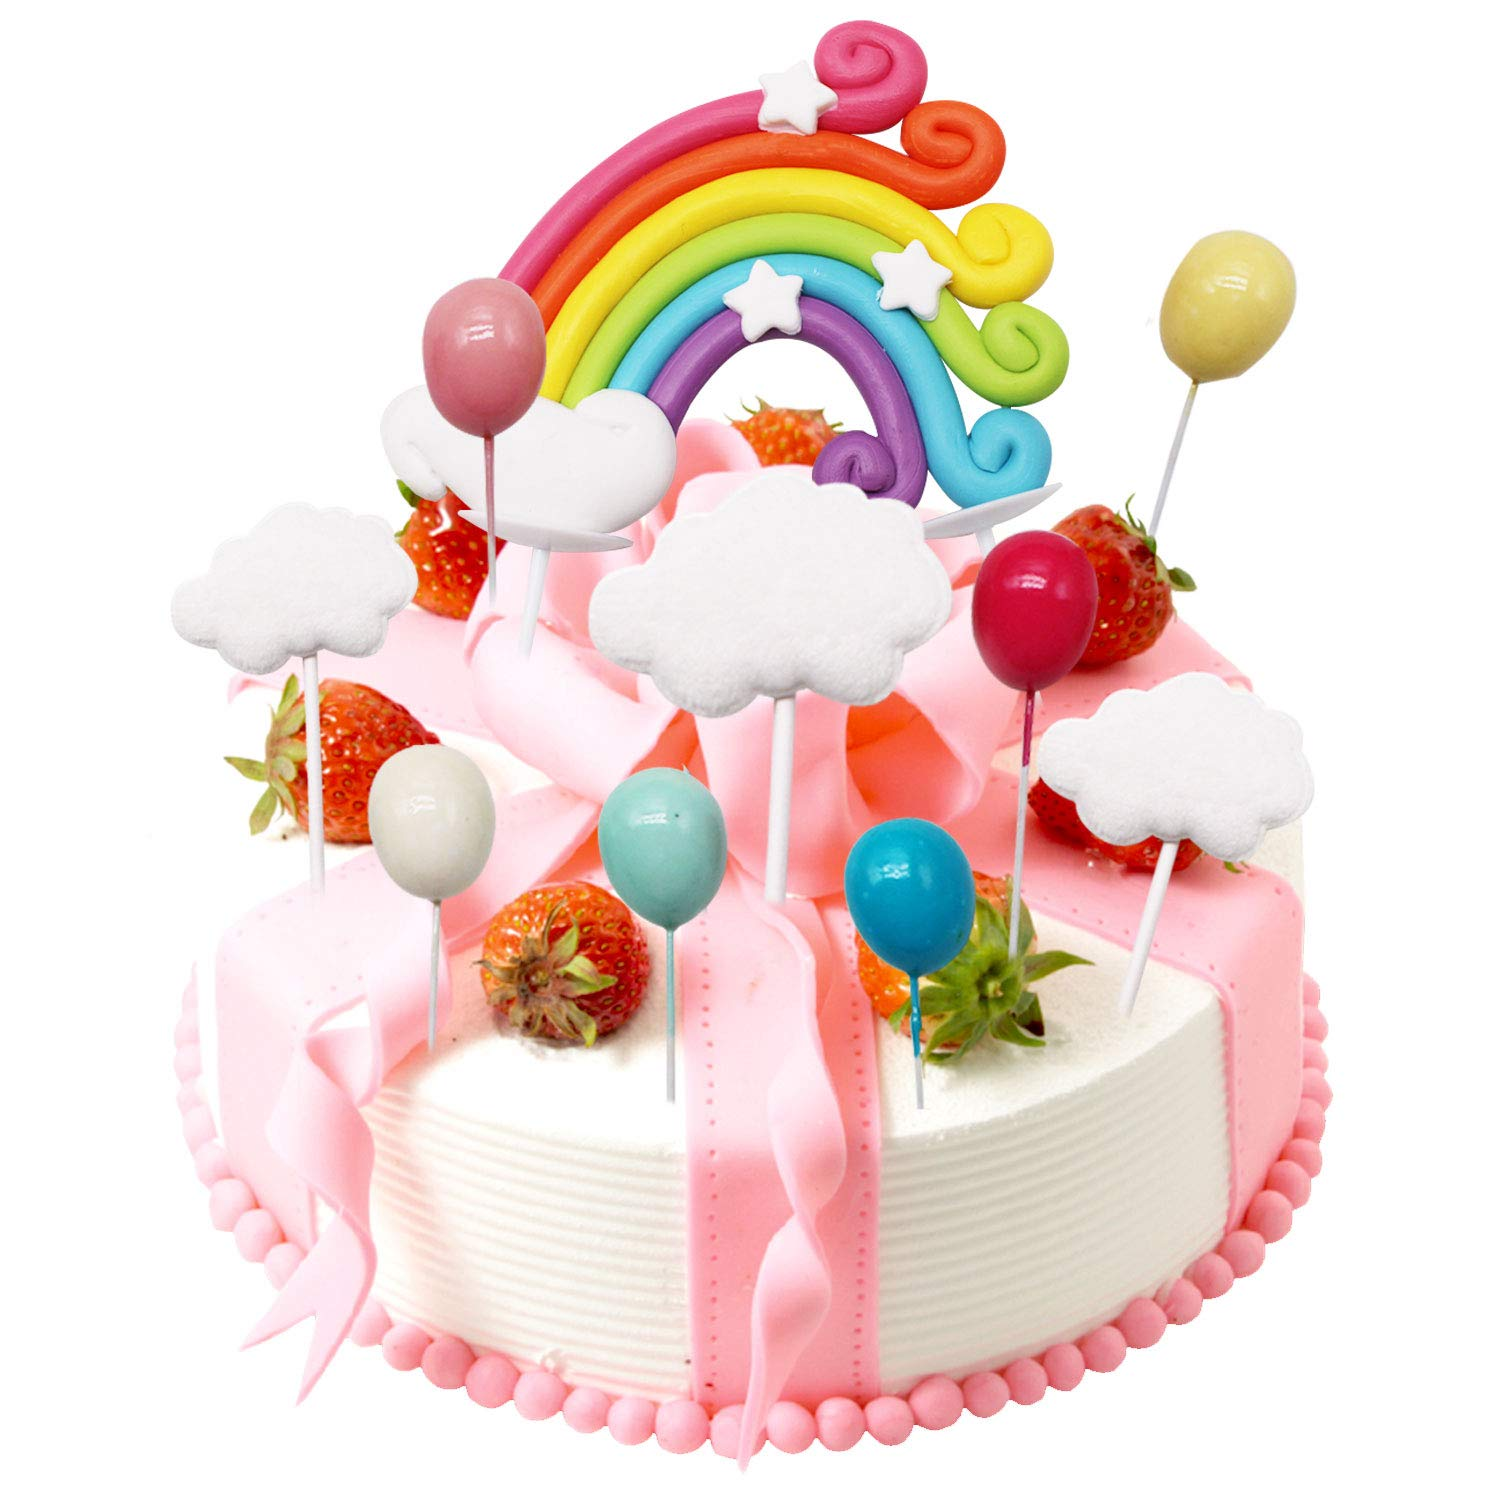 Fantastic Laozhou Cloud Rainbow With Balloon Cake Toppers Kit Cake Personalised Birthday Cards Paralily Jamesorg